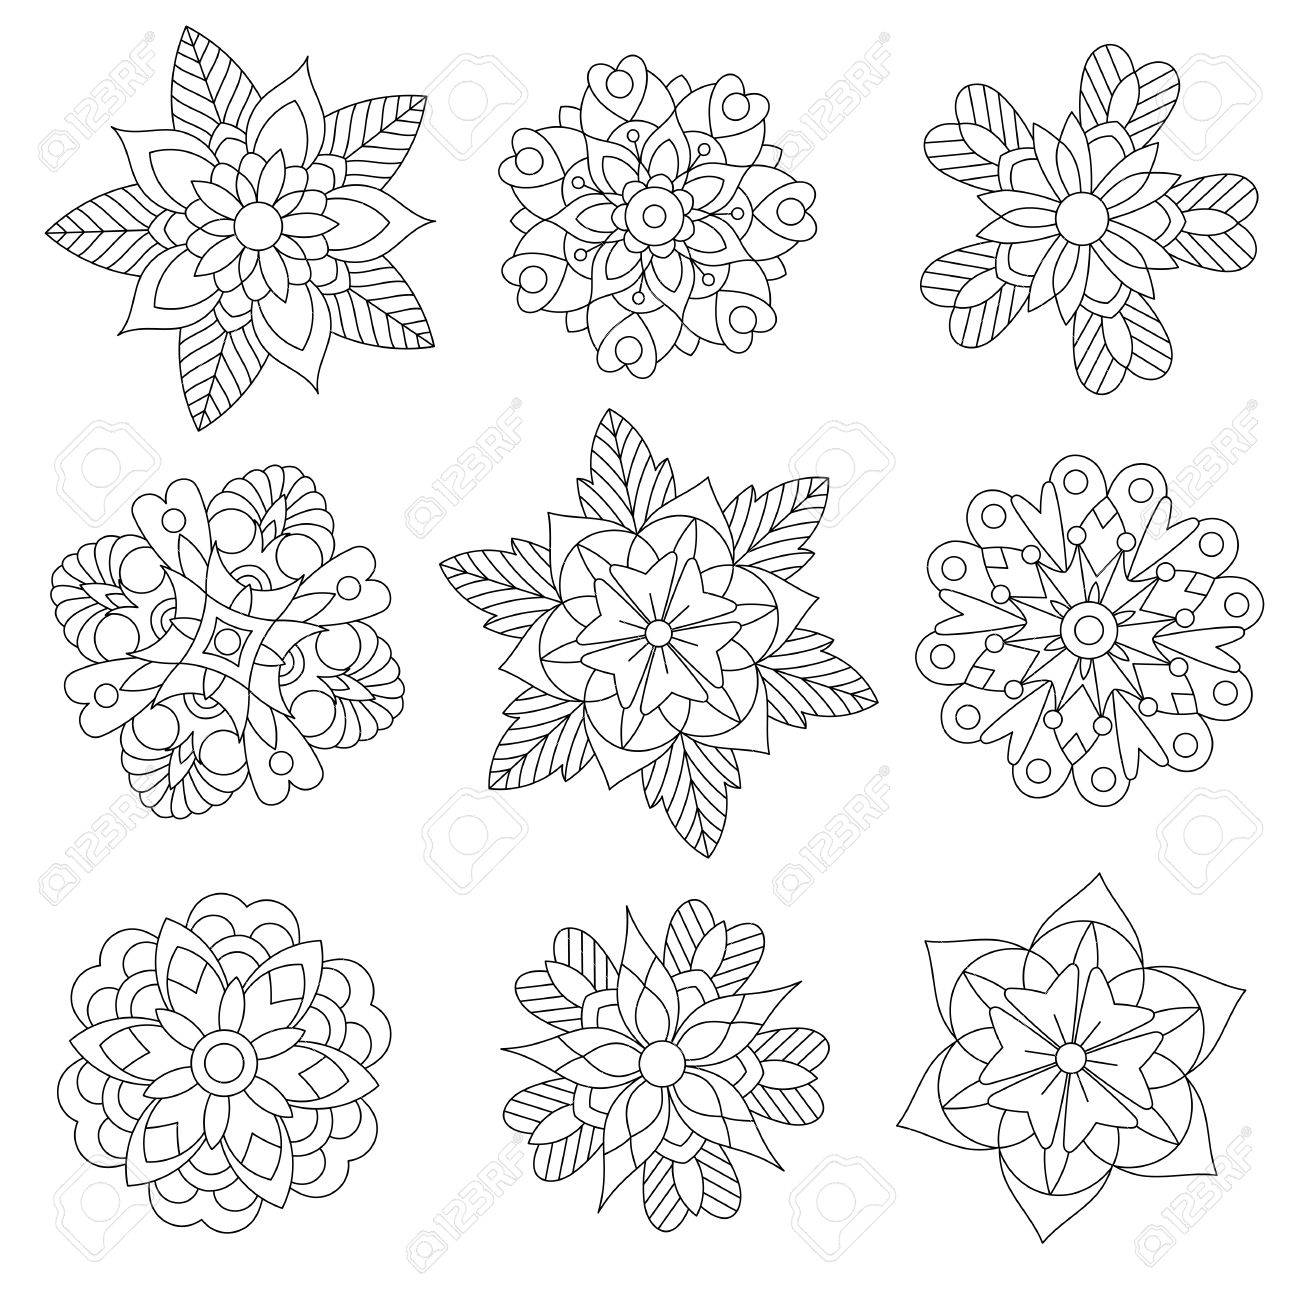 Coloring page of christmas floral decorations. Collection of snowflakes. Freehand sketch drawing for adult antistress coloring book in zentangle style. - 86207182